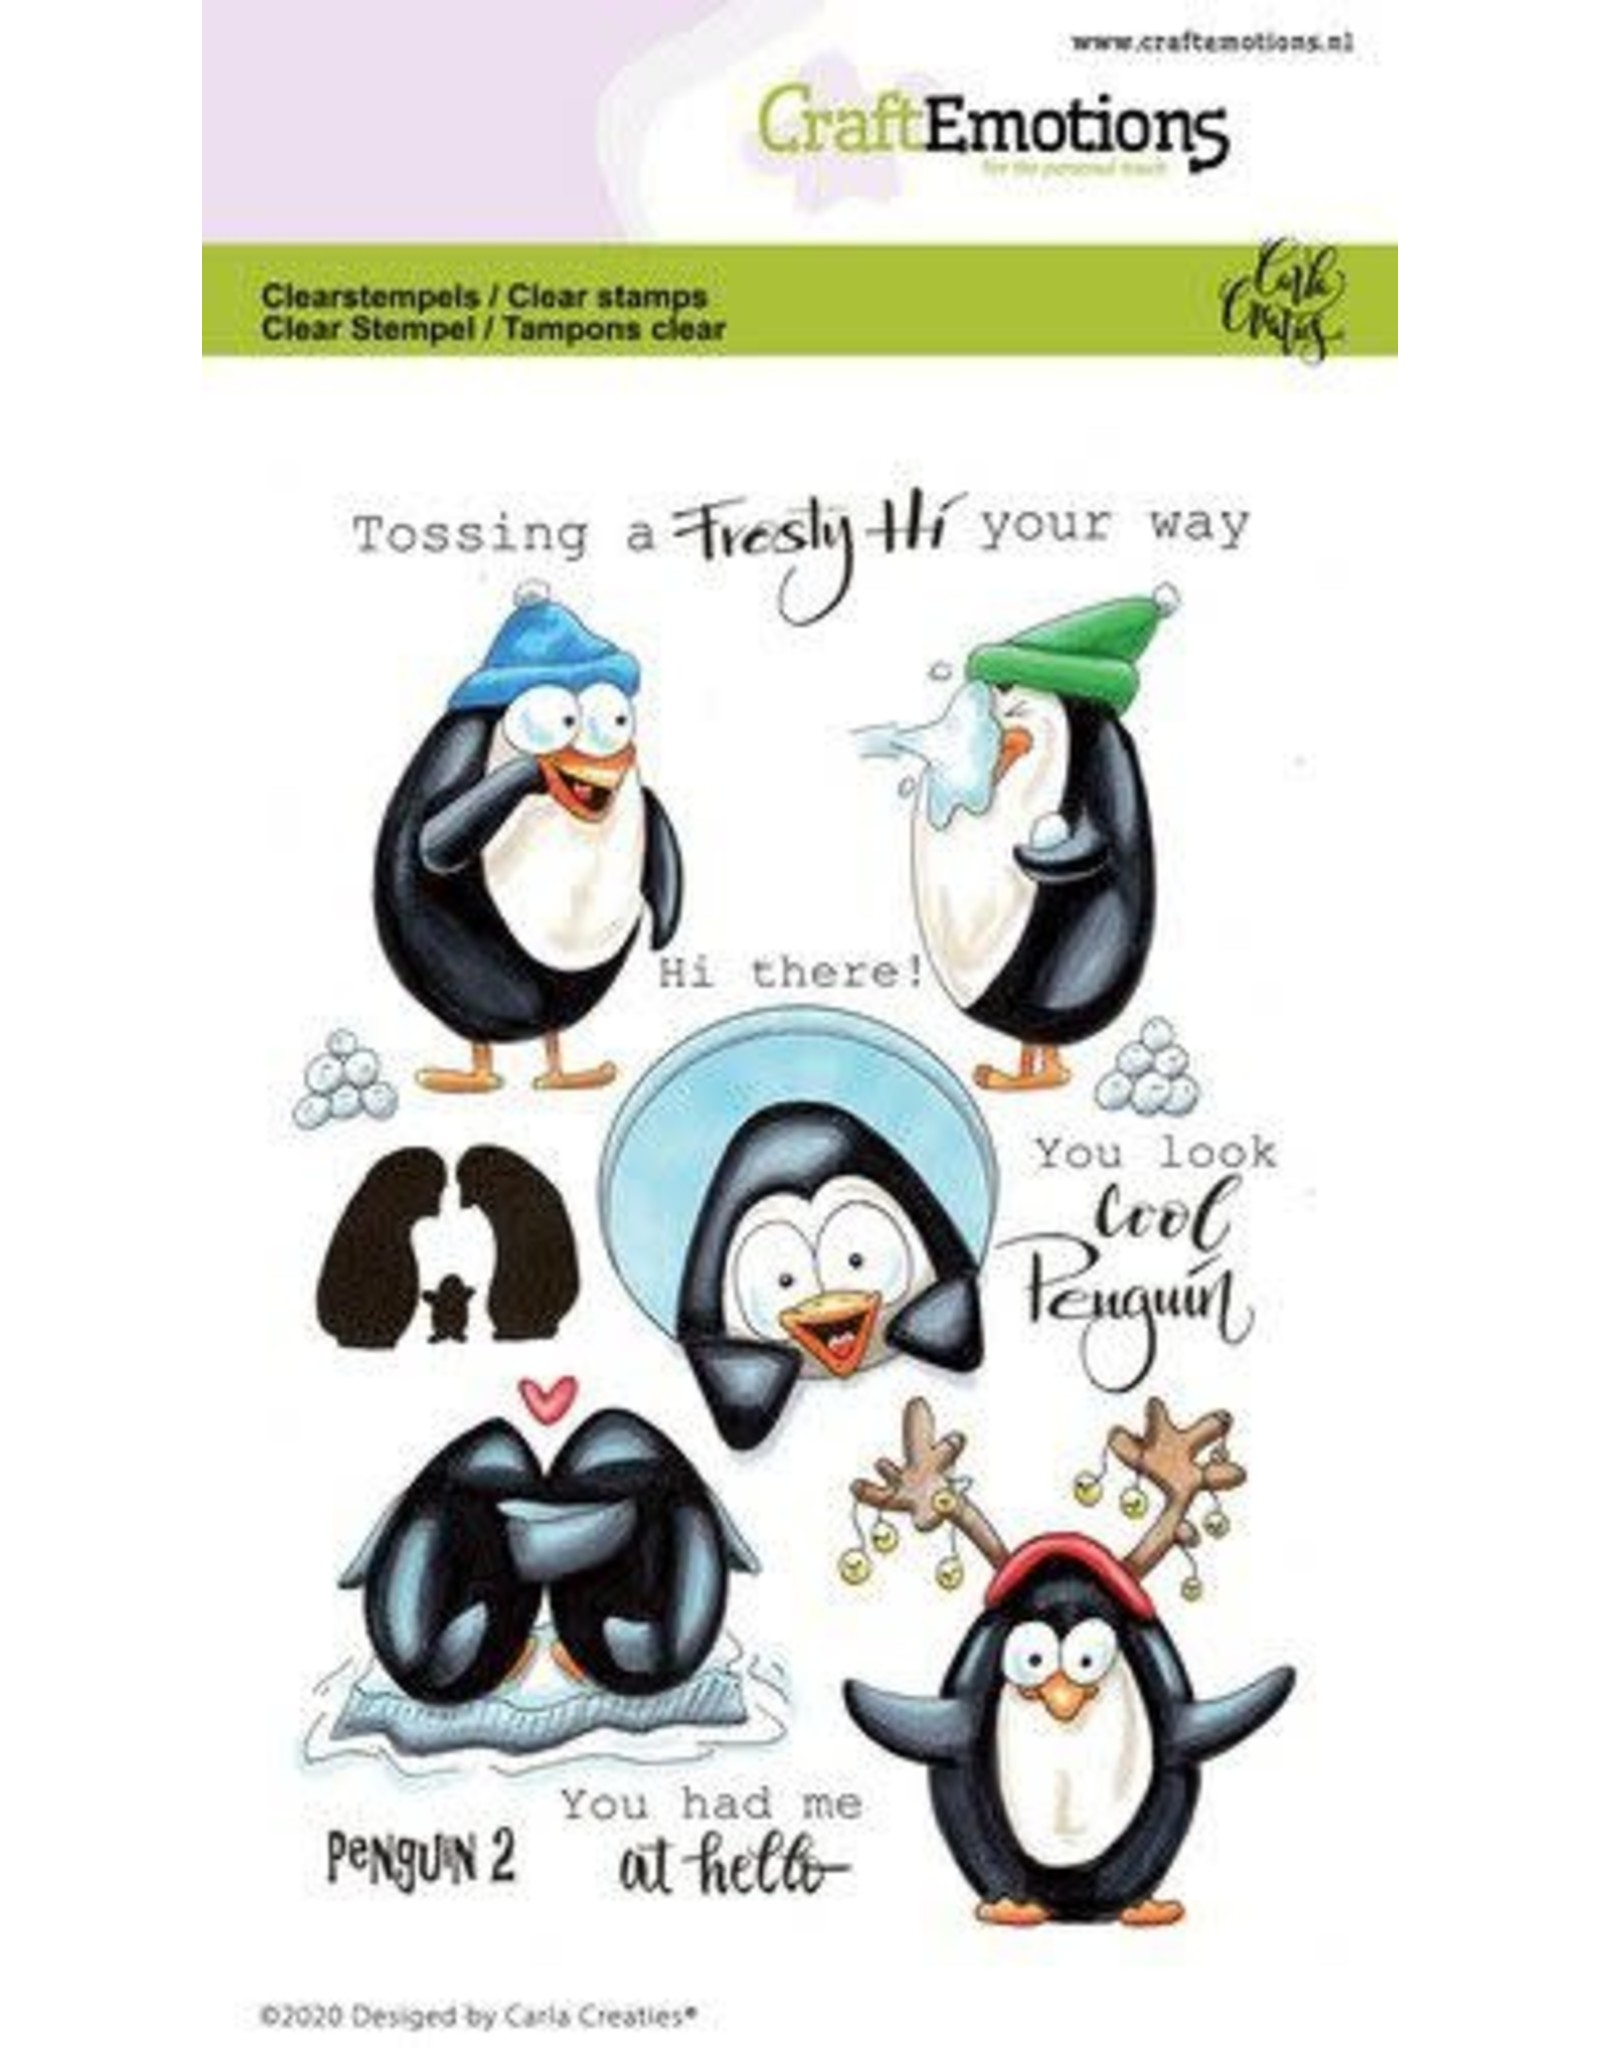 Craft Emotions CraftEmotions clearstamps A6 - Penguin 2 Carla Creaties